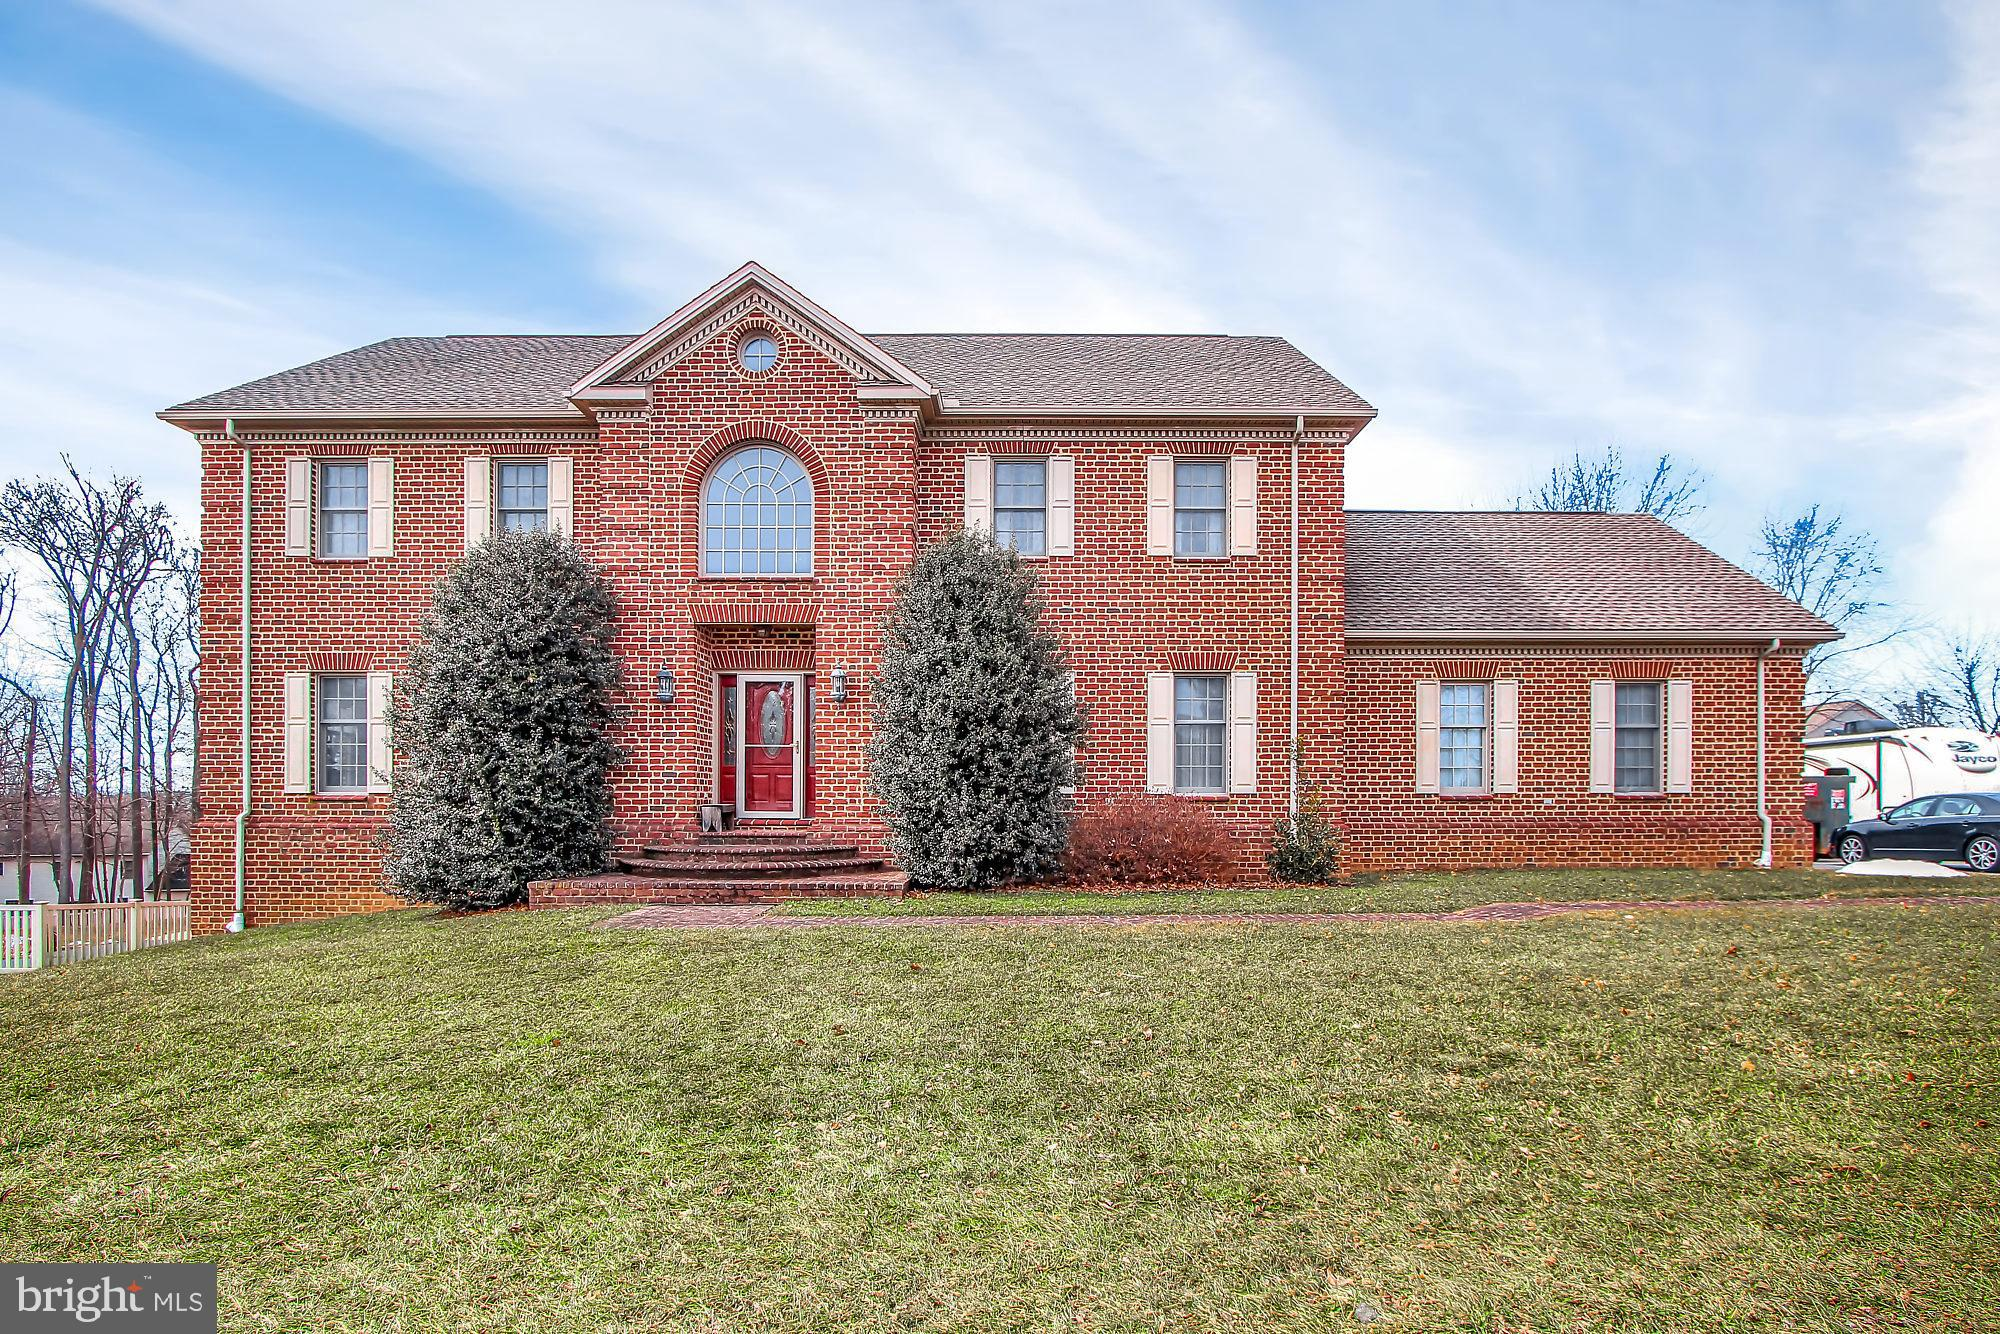 202 S SHAFFER DRIVE, NEW FREEDOM, PA 17349